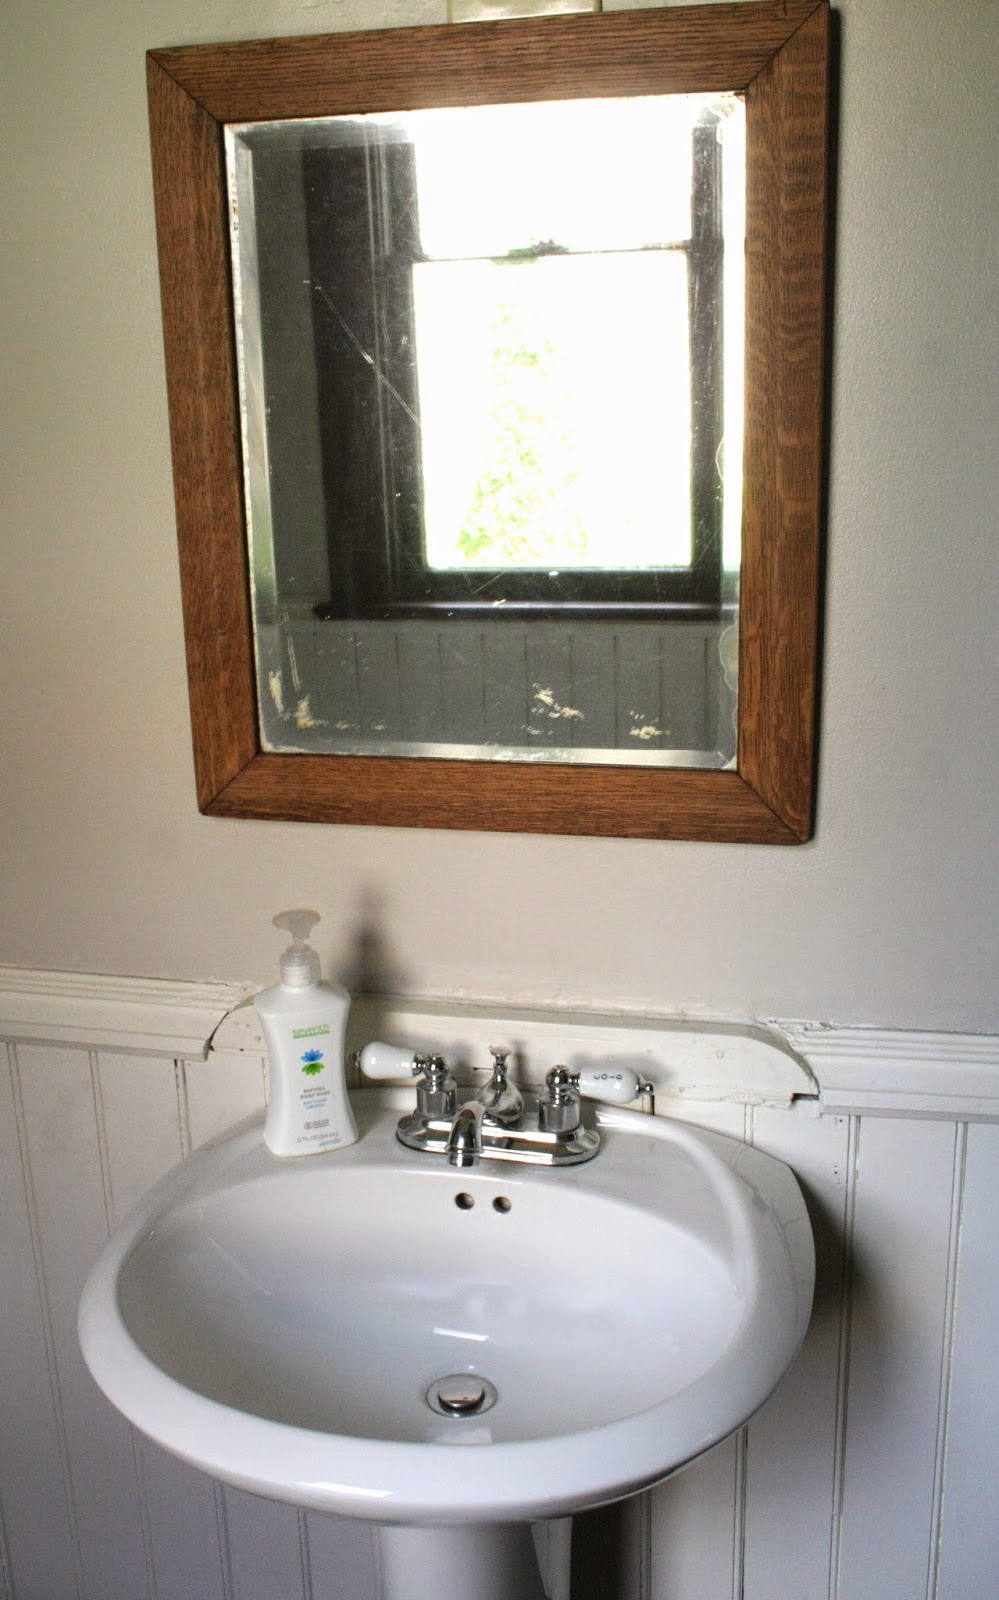 Where can i go to the bathroom - We Tried To Go As Cheap As Possible While Still Having It Match The Rest Of Our House We Got The Pedestal Sink From The Habitat For Humanity Restore For